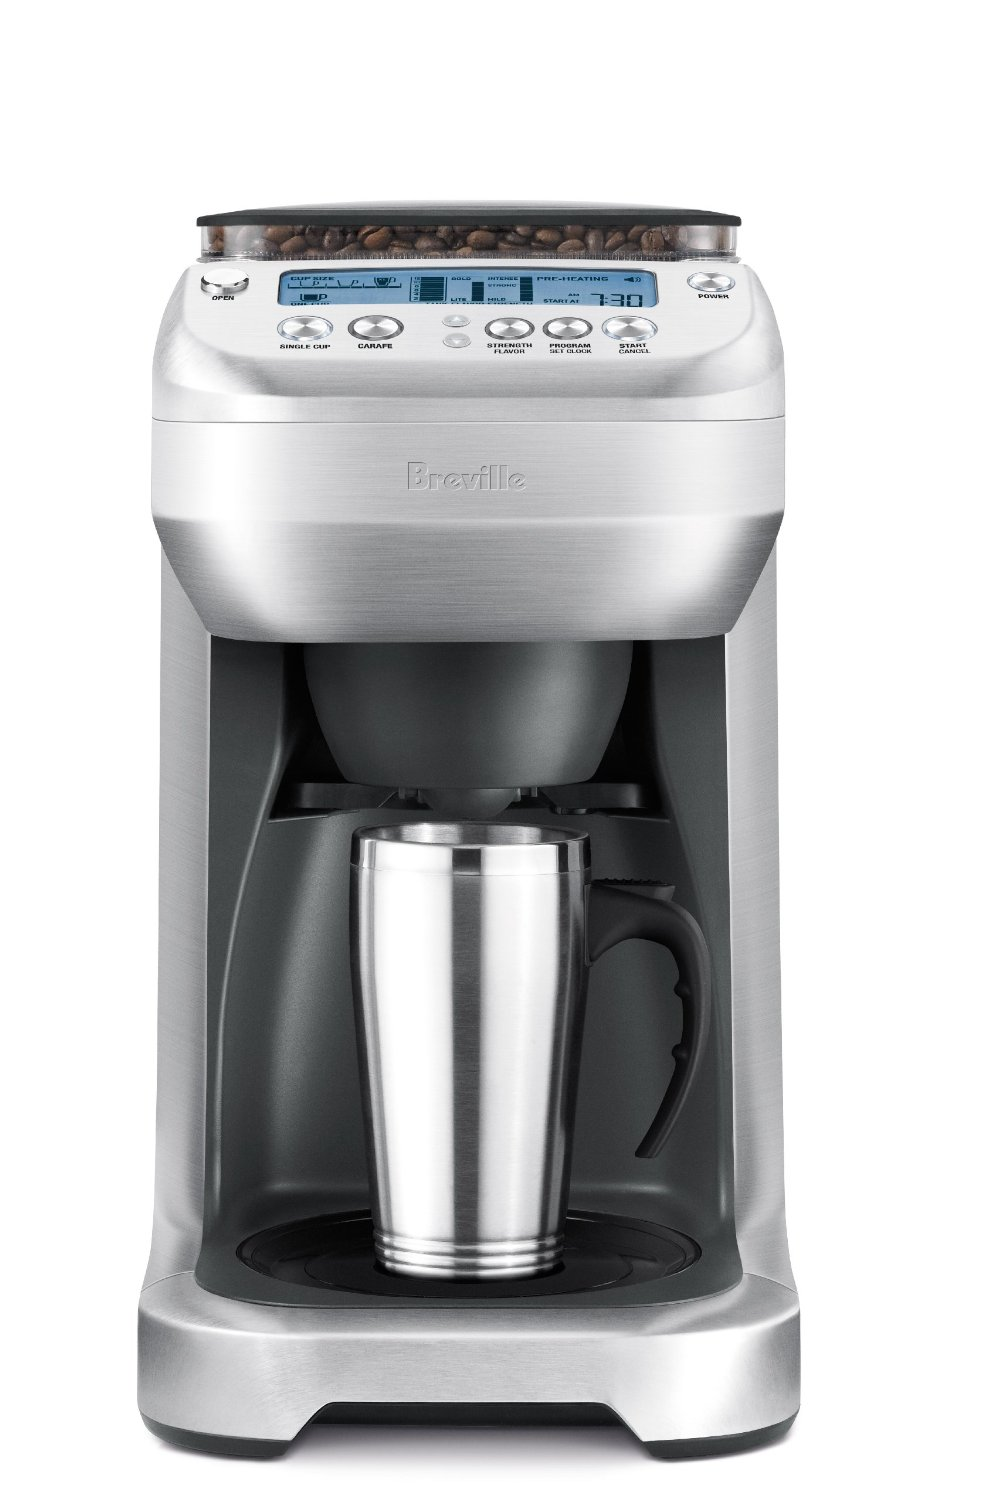 Breville BDC550XL YouBrew